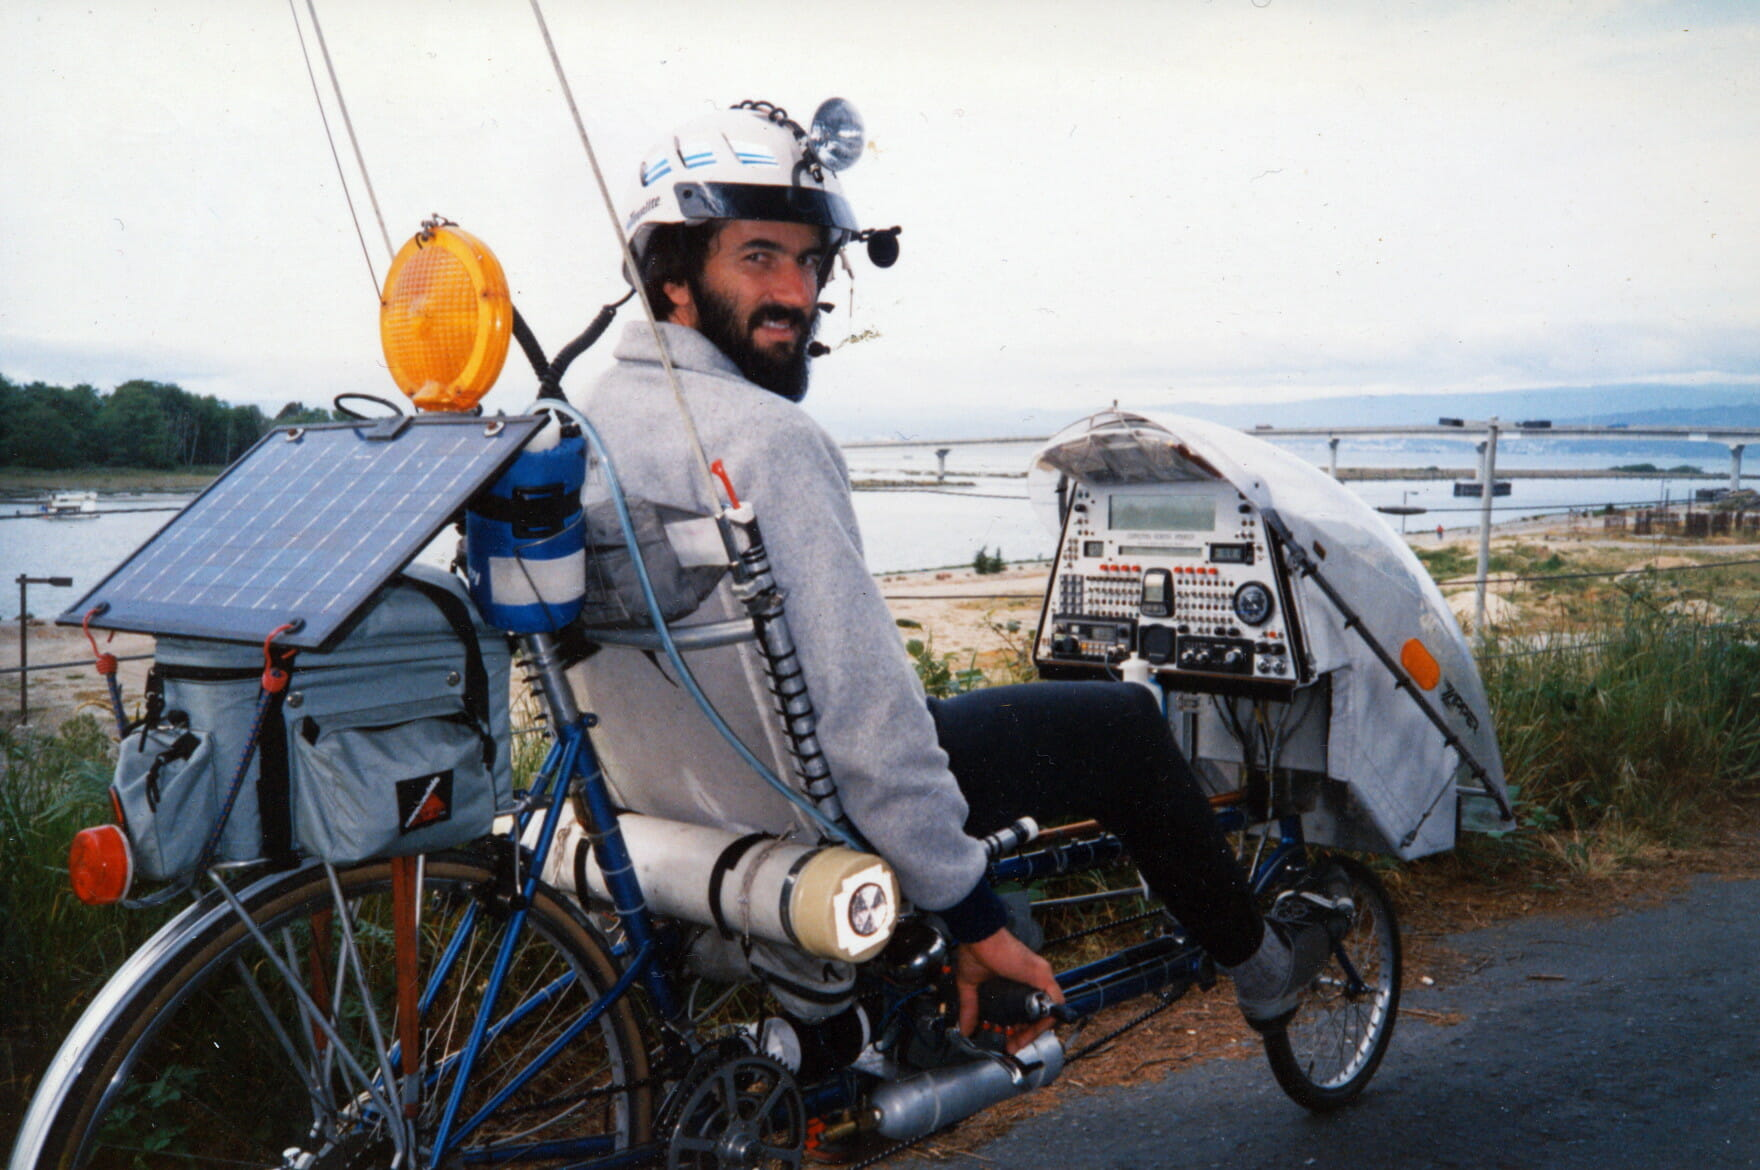 The <em>Winnebiko II</em> covered 6,000 miles from 1986-1988, and included a handlebar keyboard to allow writing while riding - click for more. (photo by Karen Greene)